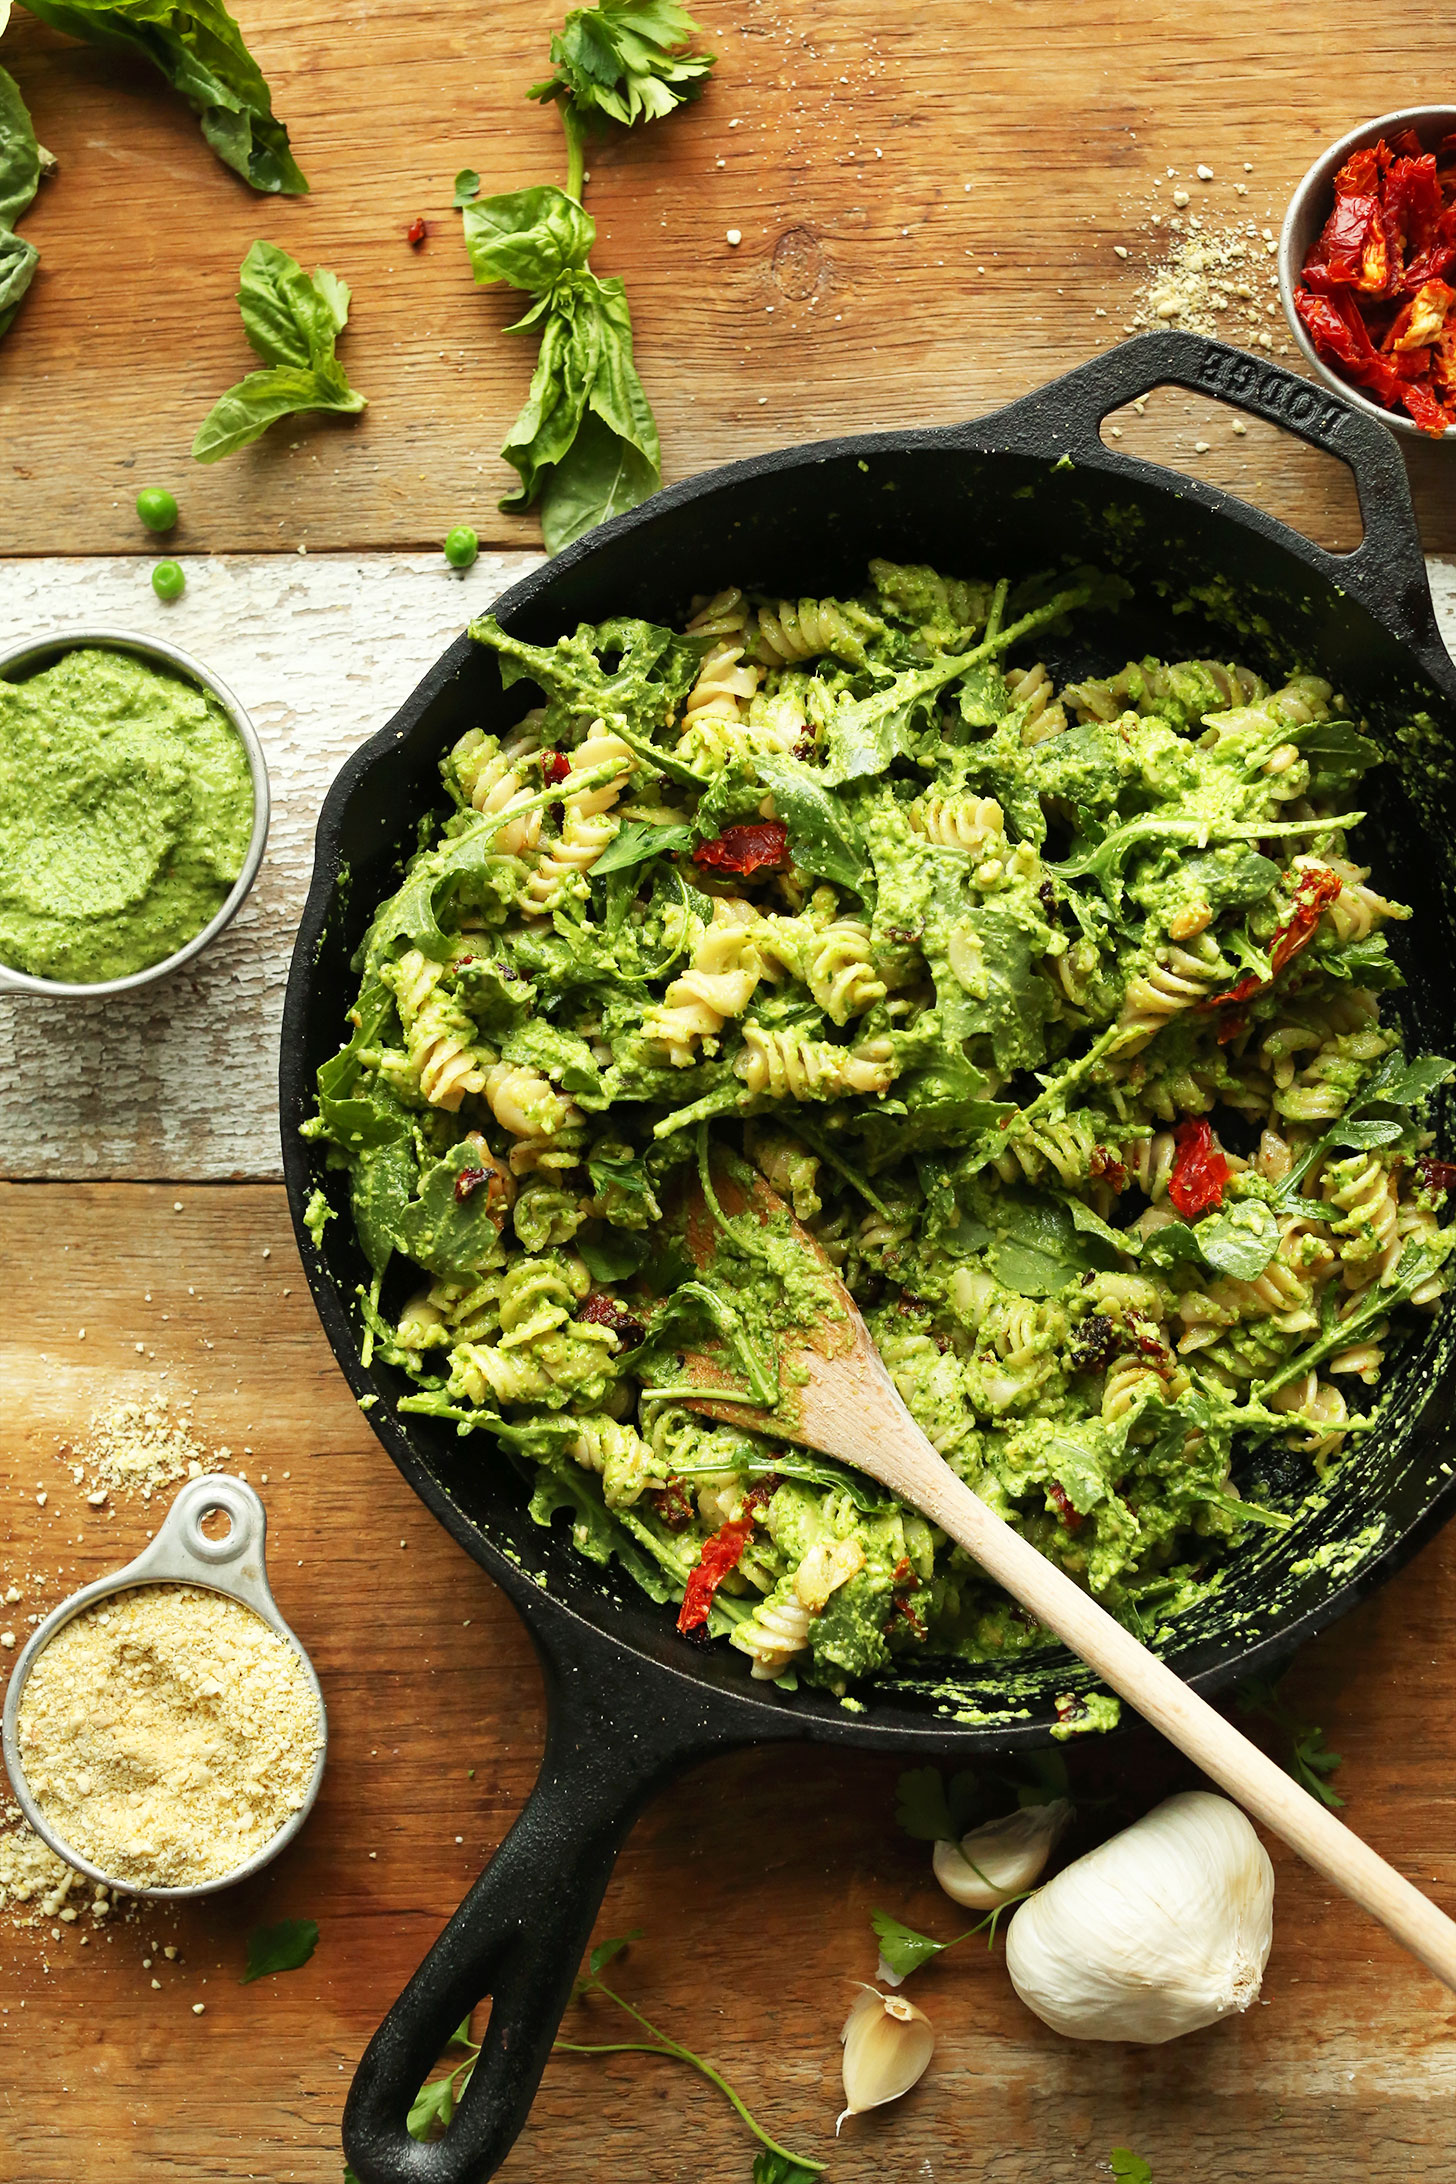 AMAZING 30 Minute Pea PESTO Pasta With Sun Dried Tomatoes And Arugula